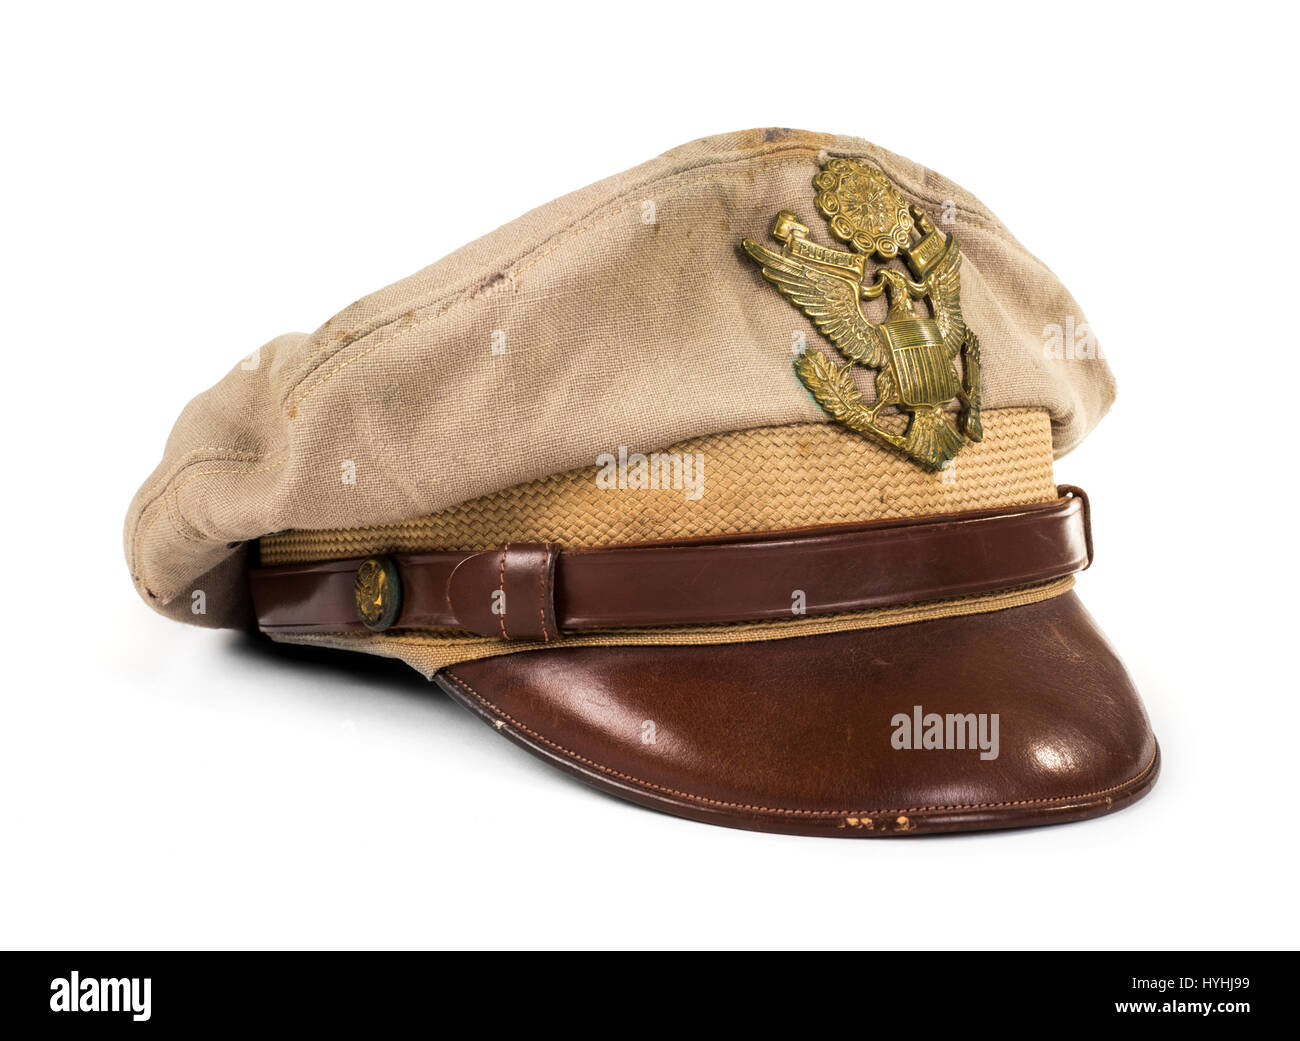 WWII US Army Officer's hat belonging to Lieutenant G.W. Fitzgerald and made by Rancroft Uniform Headwear - Stock Image